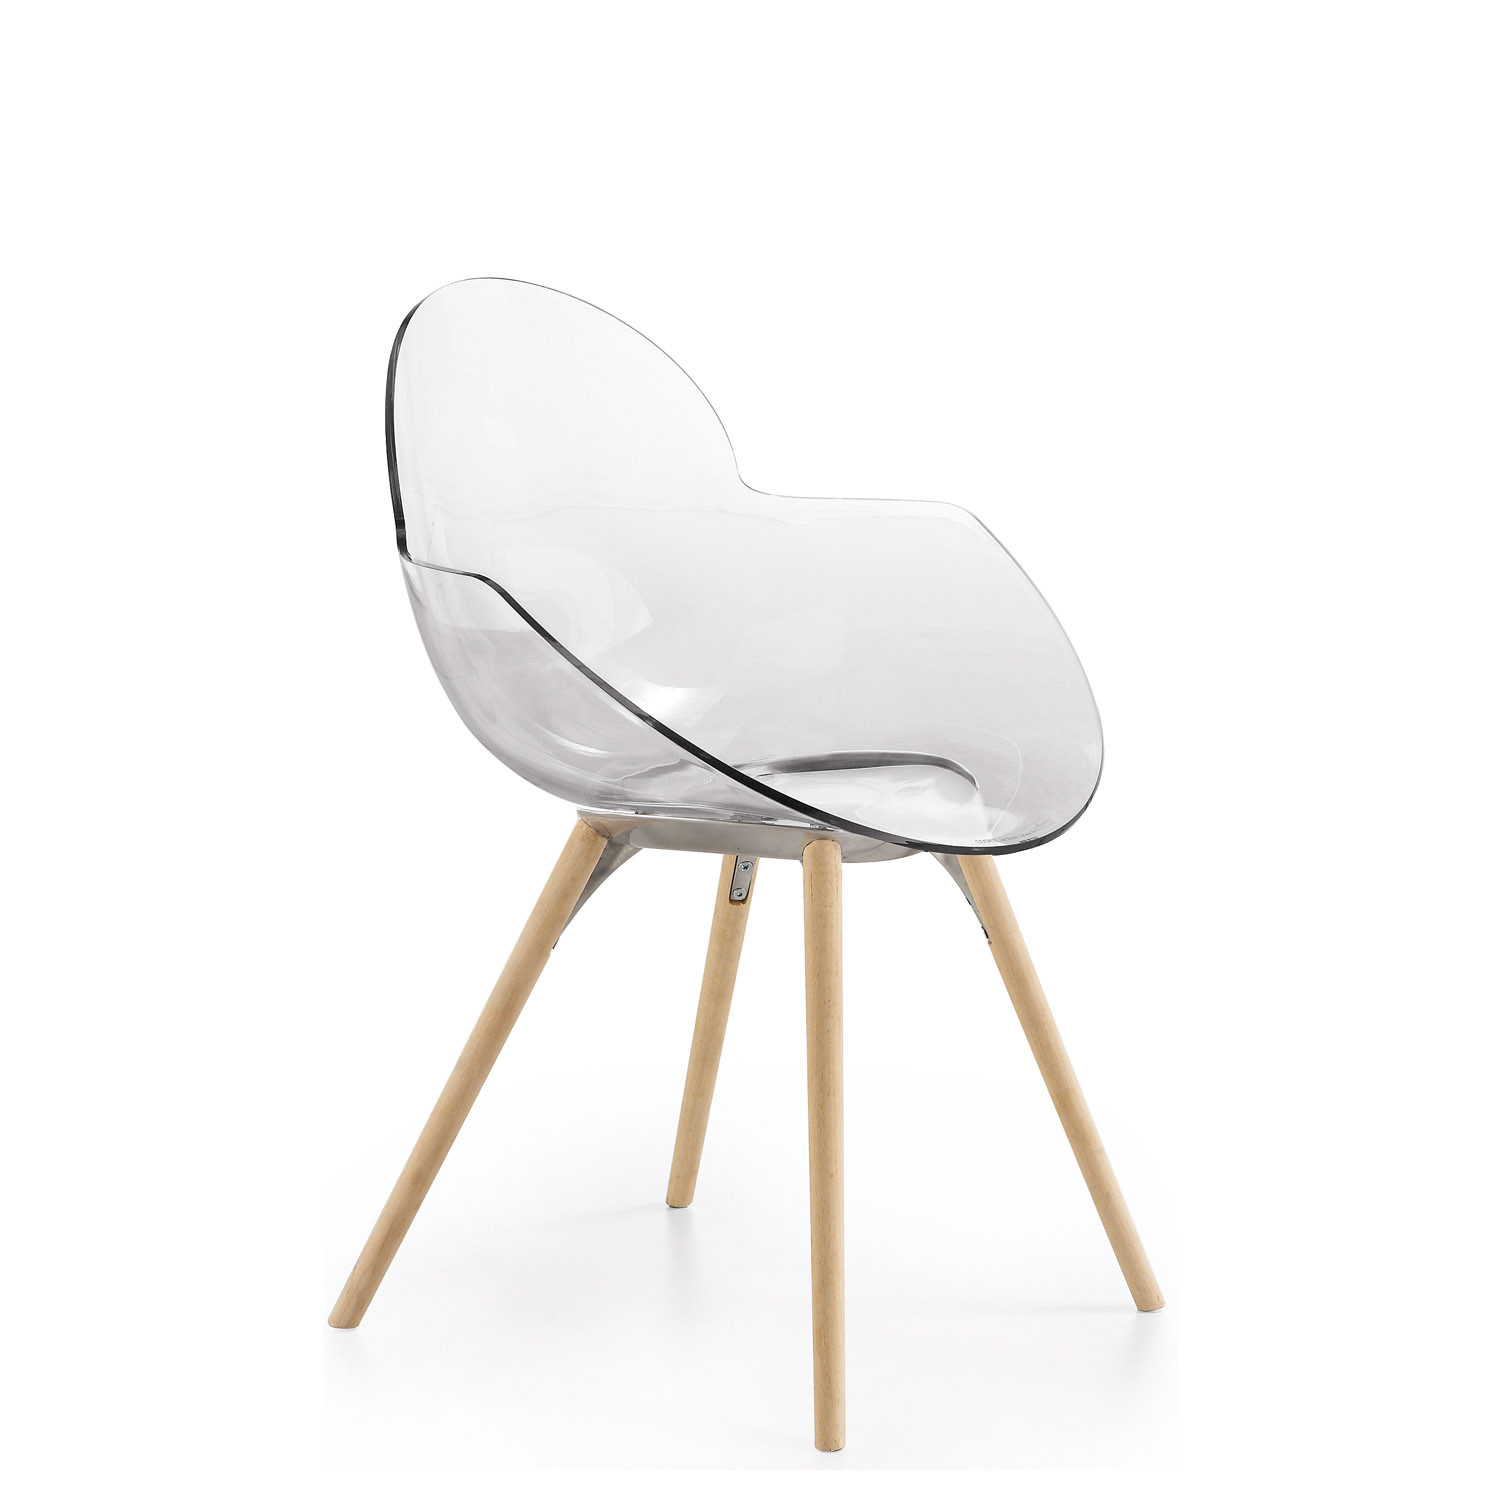 MCK4 Cookie Cafe Chair with wooden legs